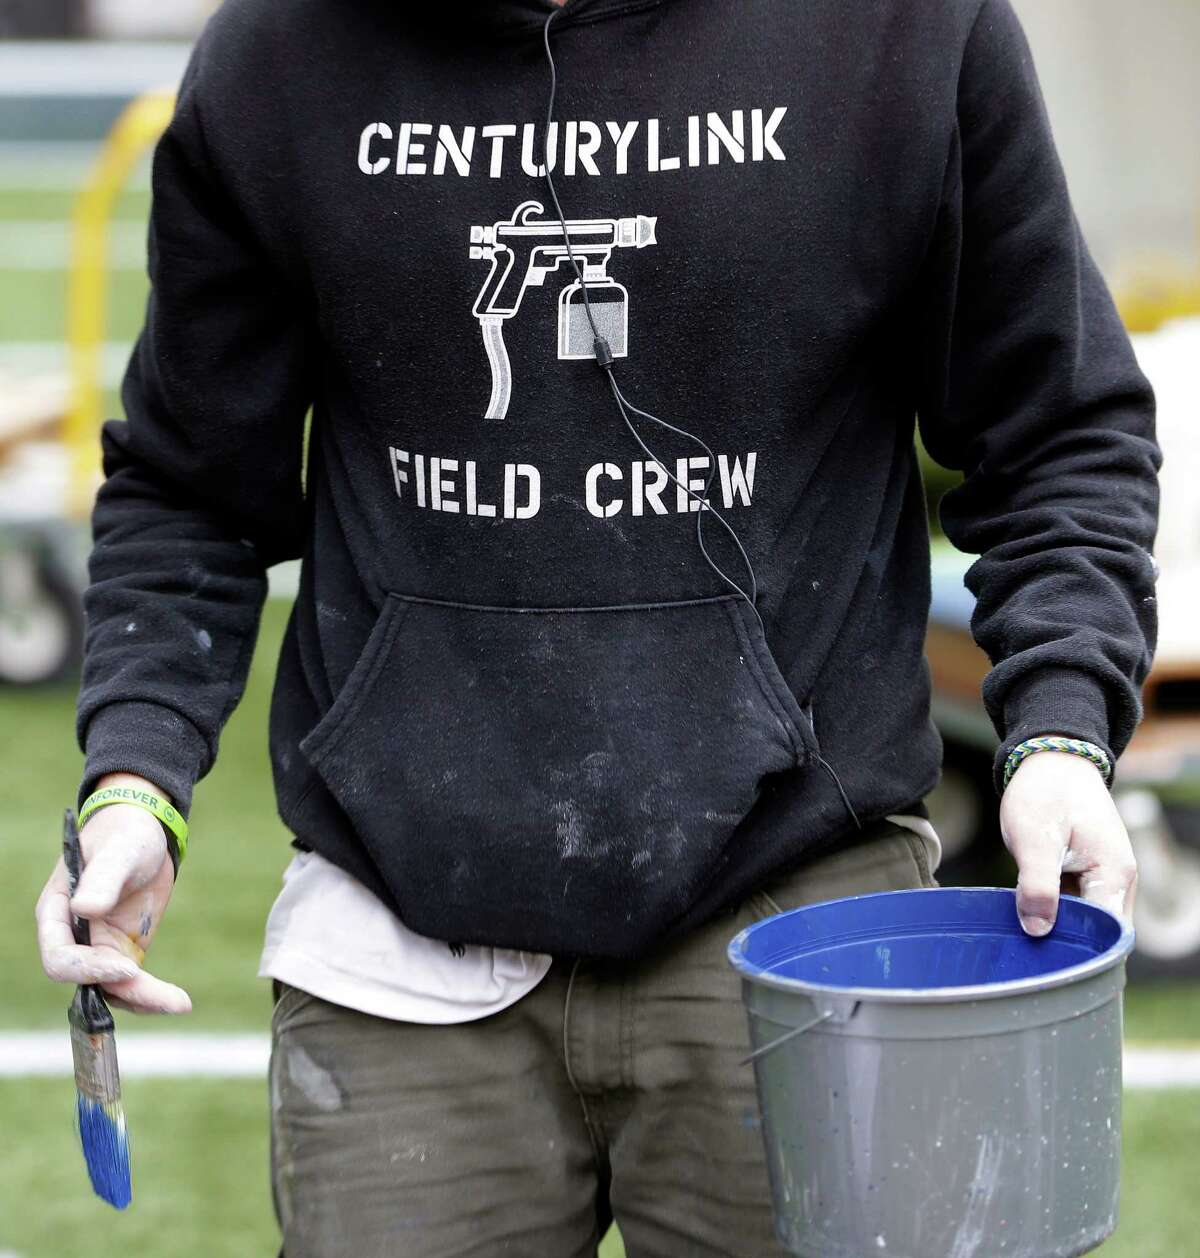 A member of the CenturyLink Field Crew carries a paint bucket as he helps prepare CenturyLink Field for the NFL football NFC championship game in Seattle, Tuesday, Jan. 14, 2014. The game will be played between the Seattle Seahawks and the San Francisco 49ers on Sunday.